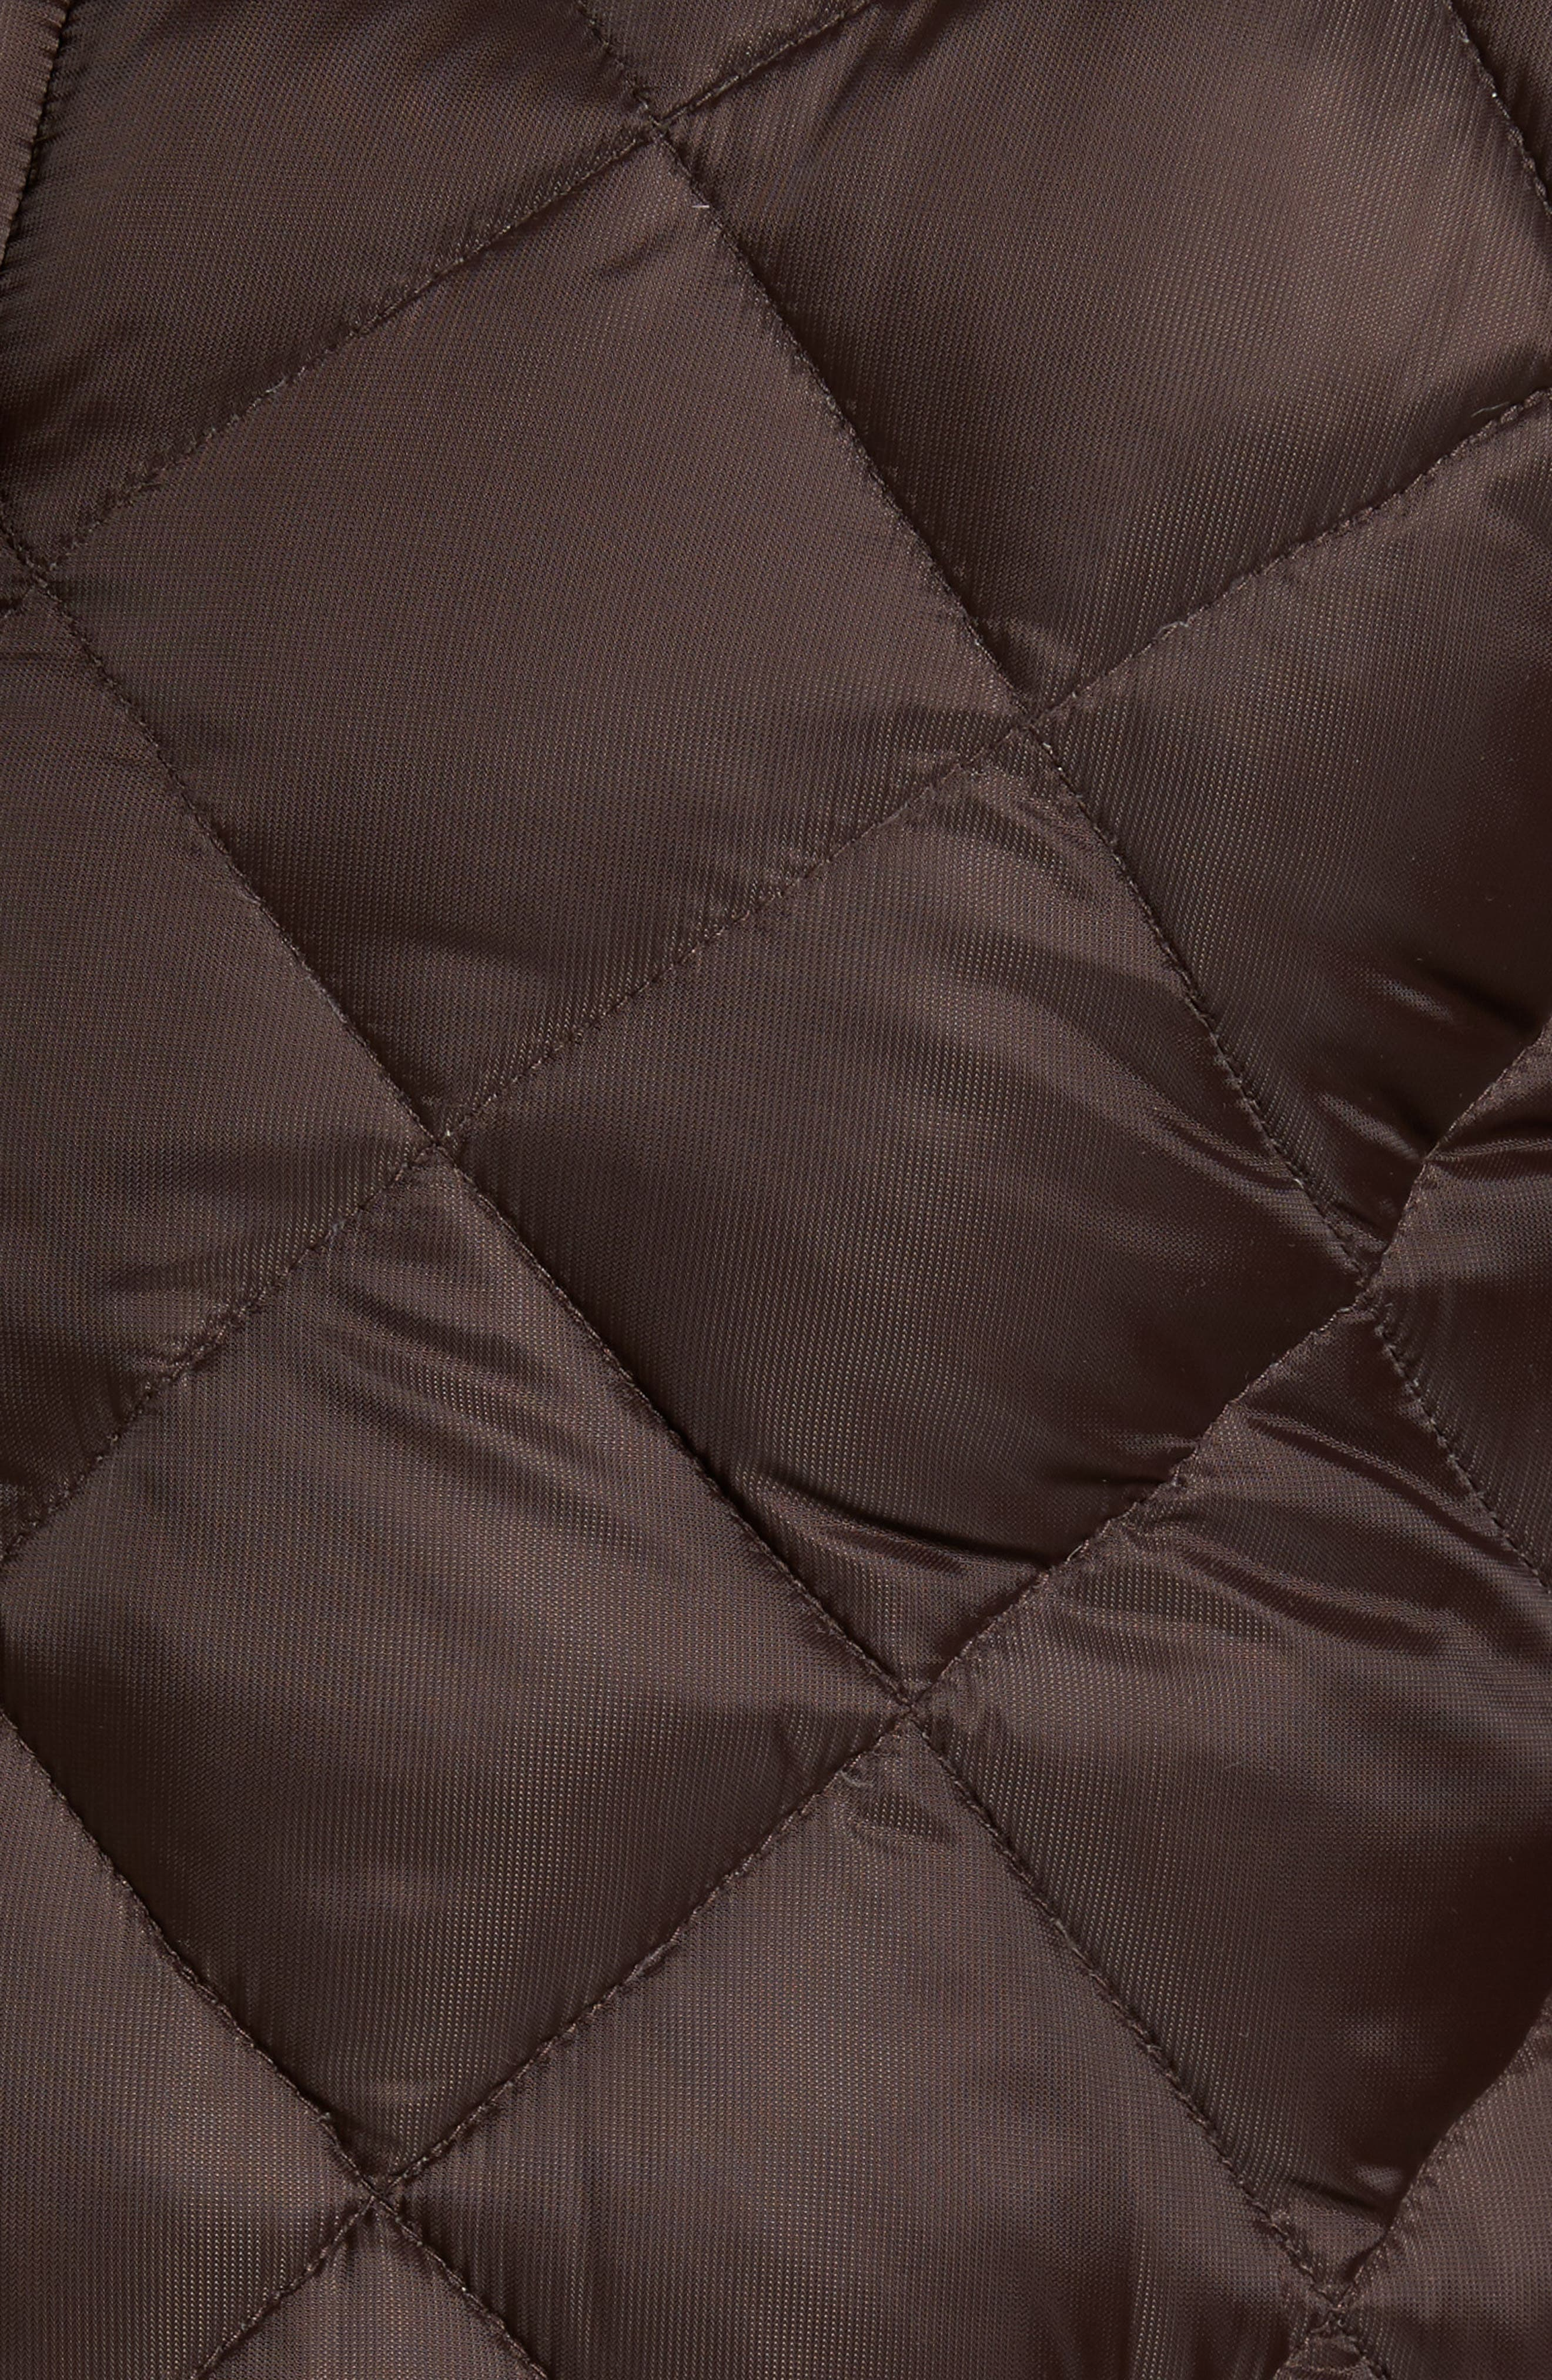 Hendriksen Quilted Down Coat,                             Alternate thumbnail 6, color,                             CHARRED WOOD